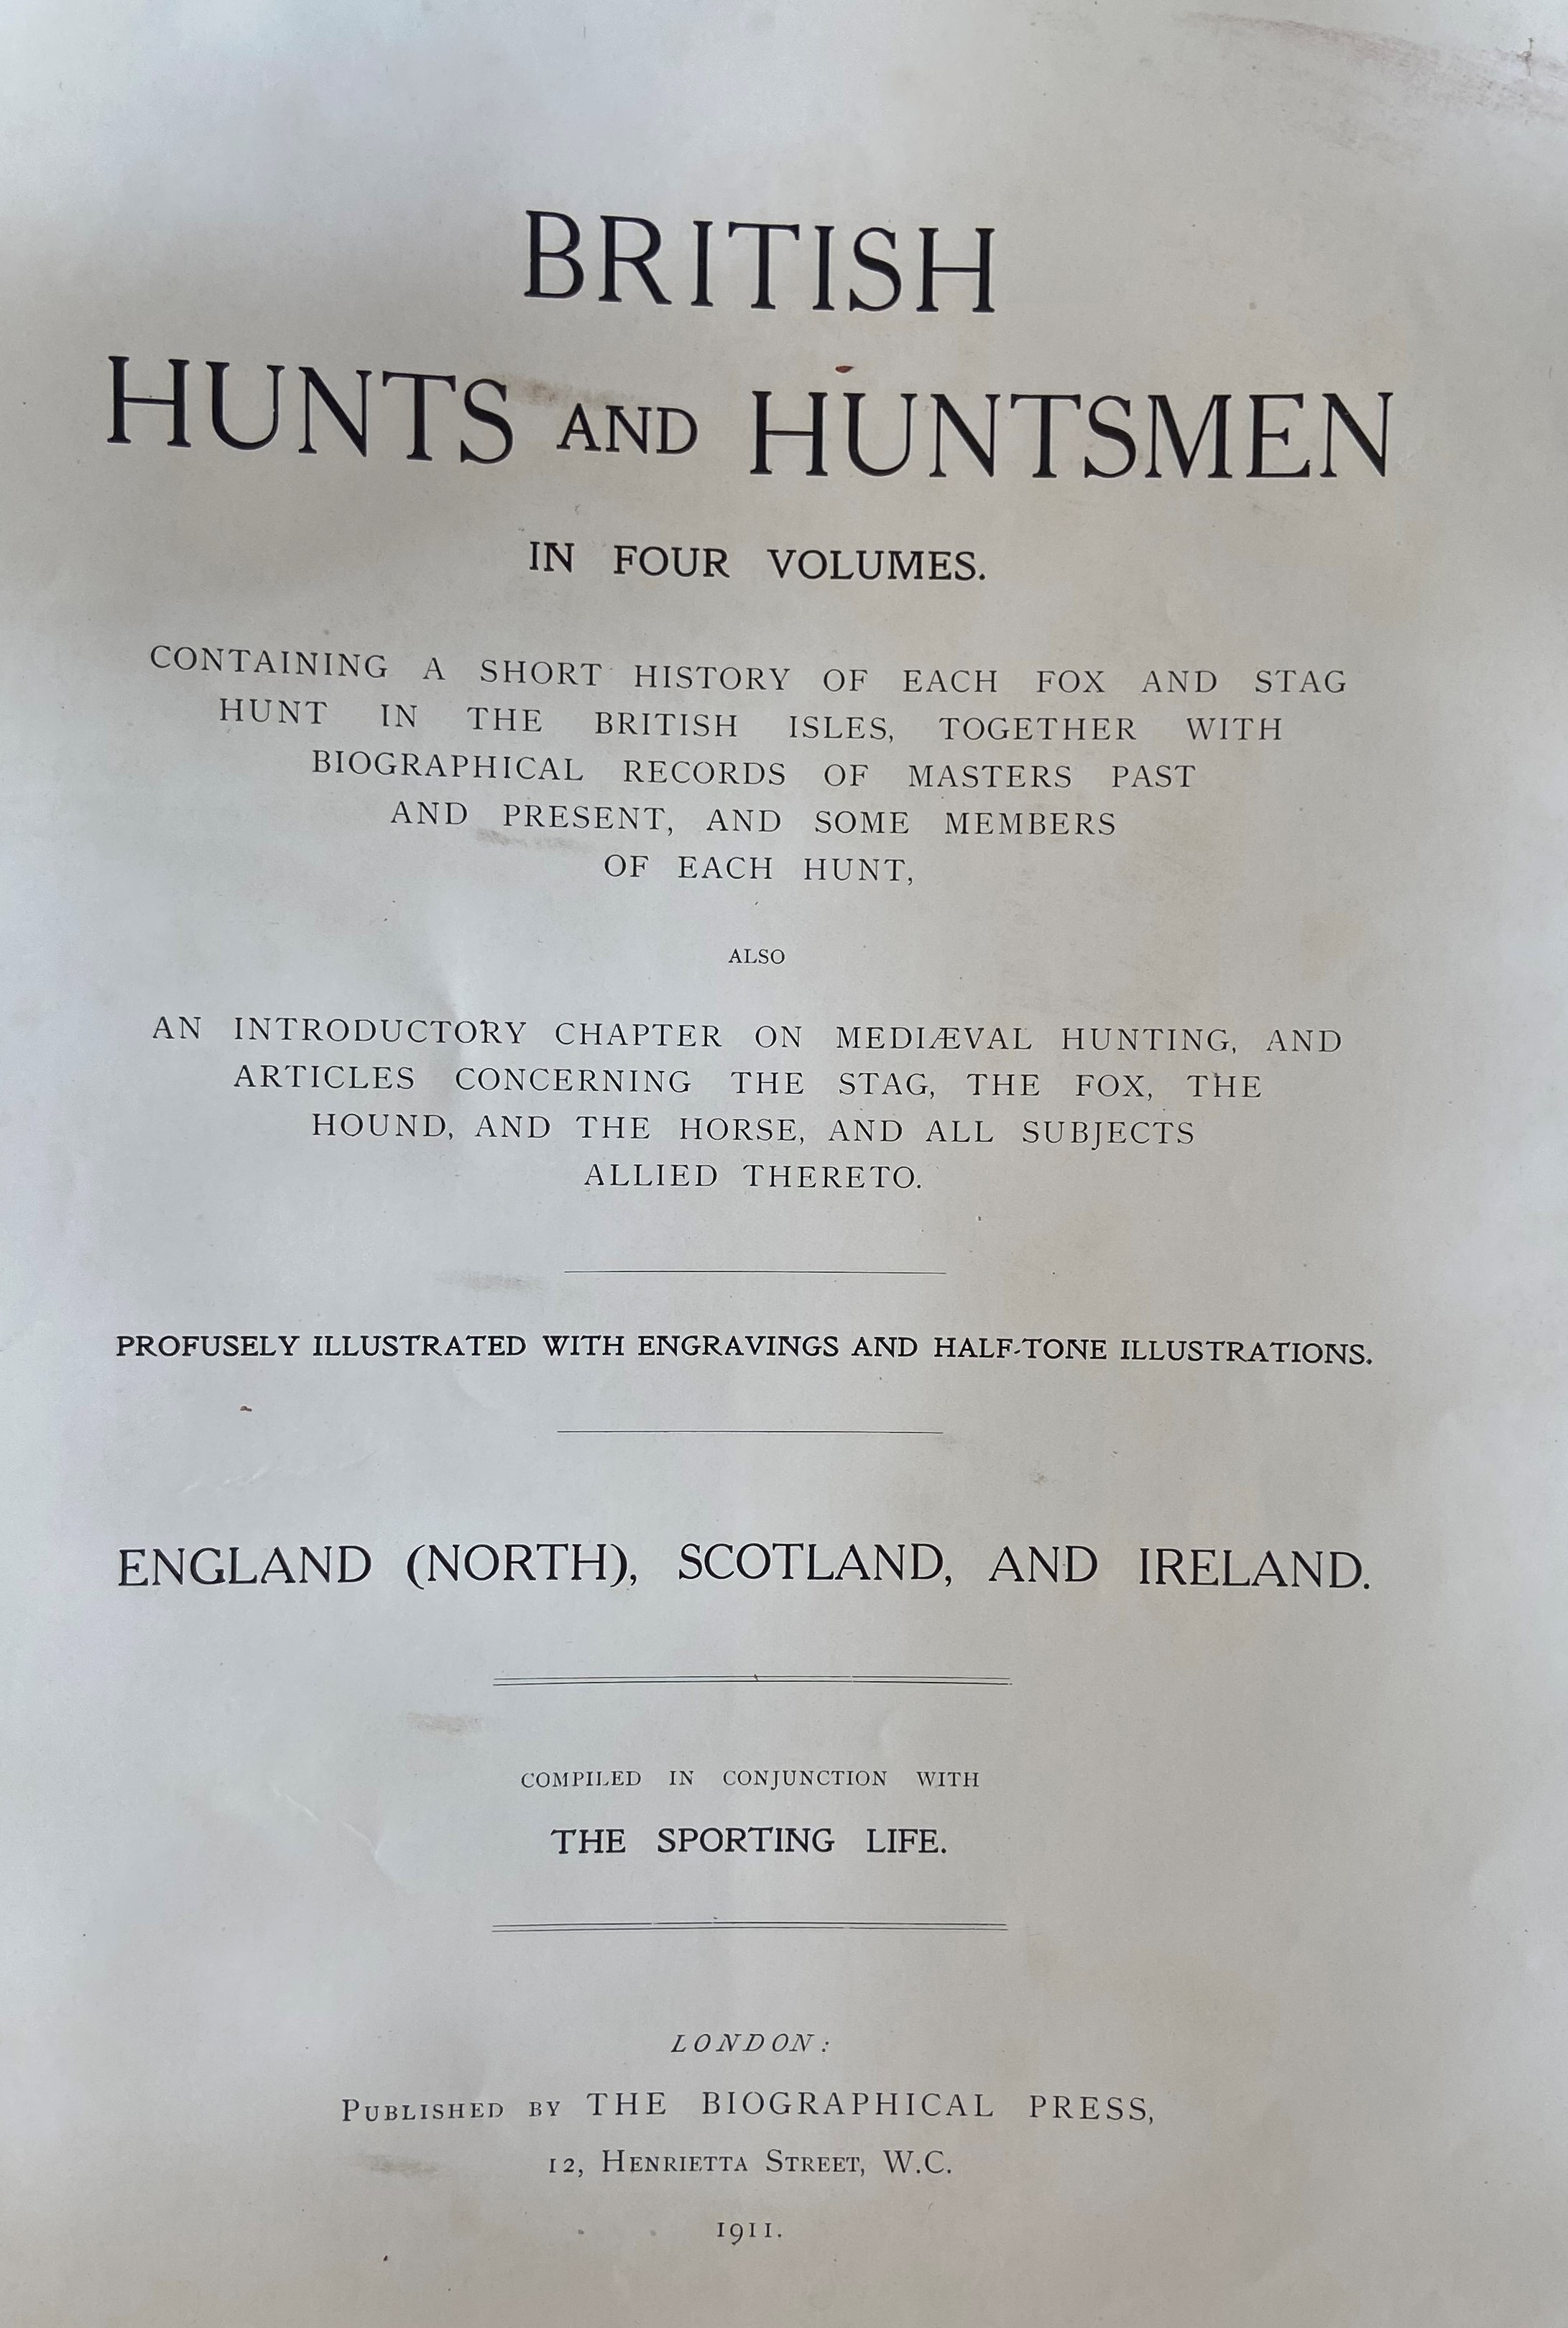 Sporting:ÿÿBritish Hunts and Huntsmen, in Four Volumes, 4 vols. lg. thick folio L. (Biographical